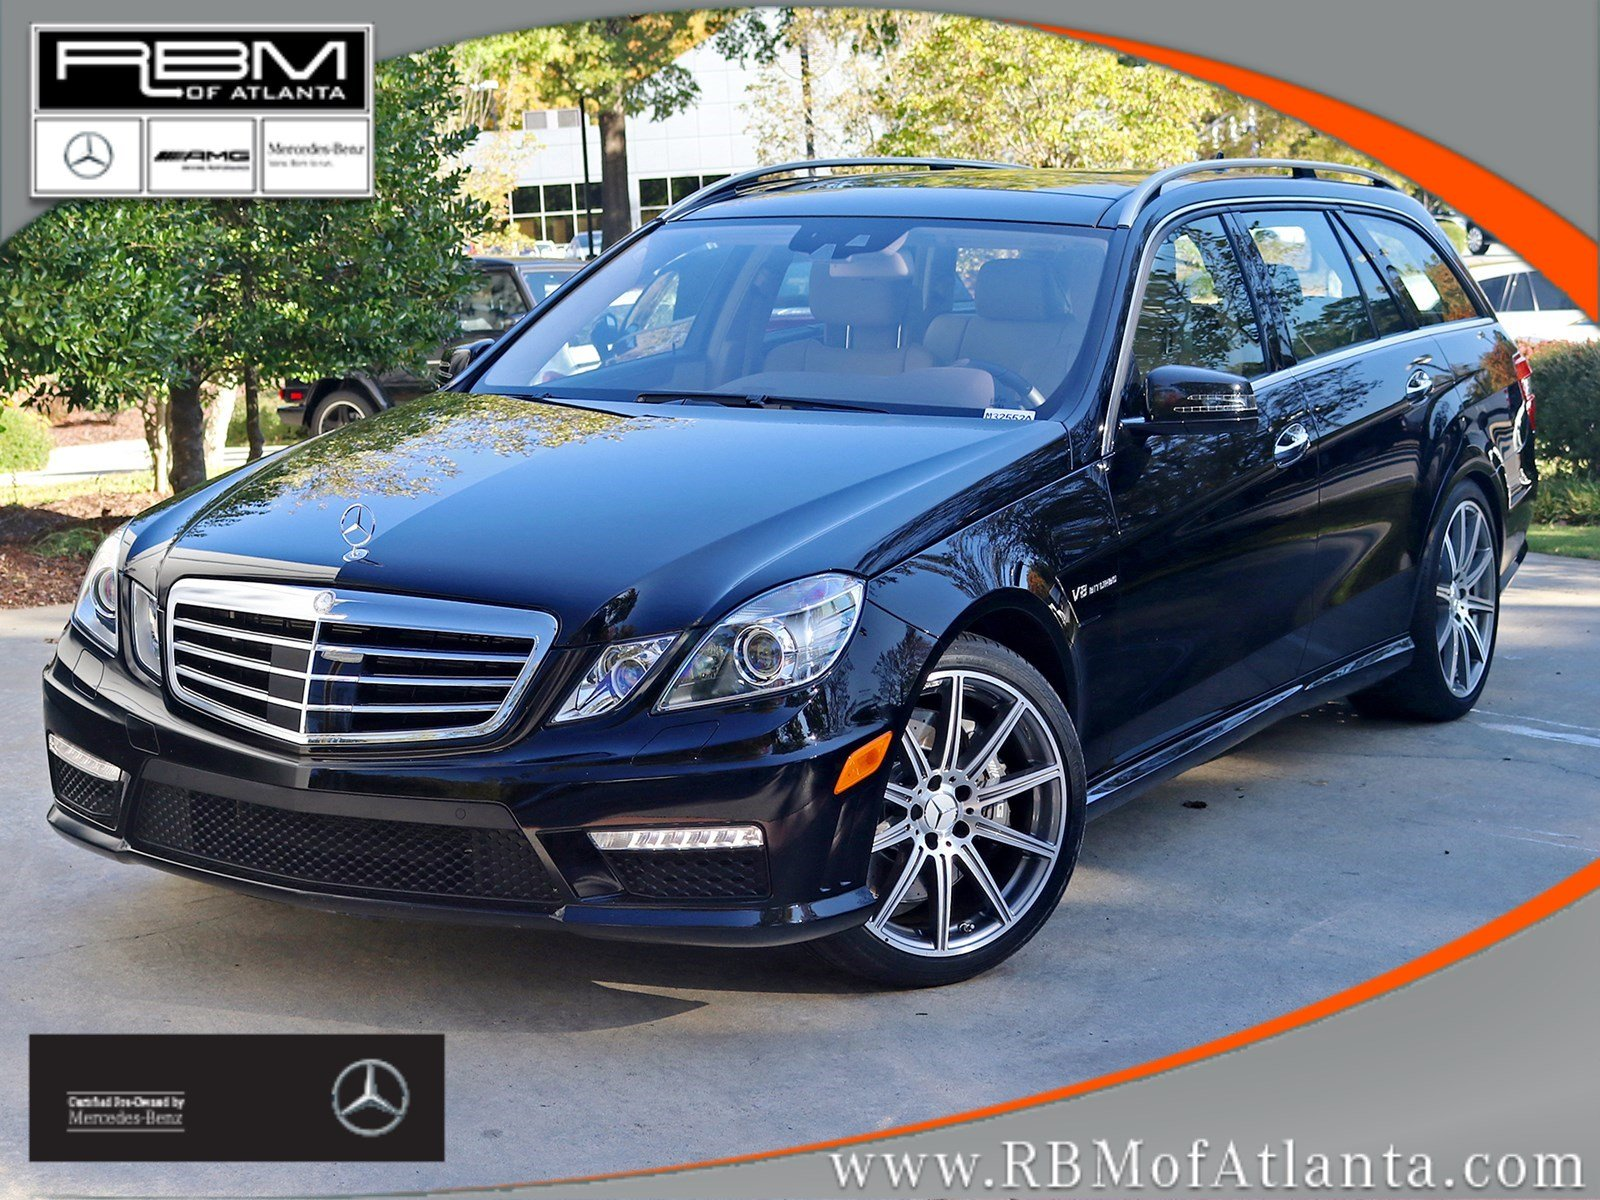 Certified Pre-Owned 2012 Mercedes-Benz E 63 S AMG® Wagon